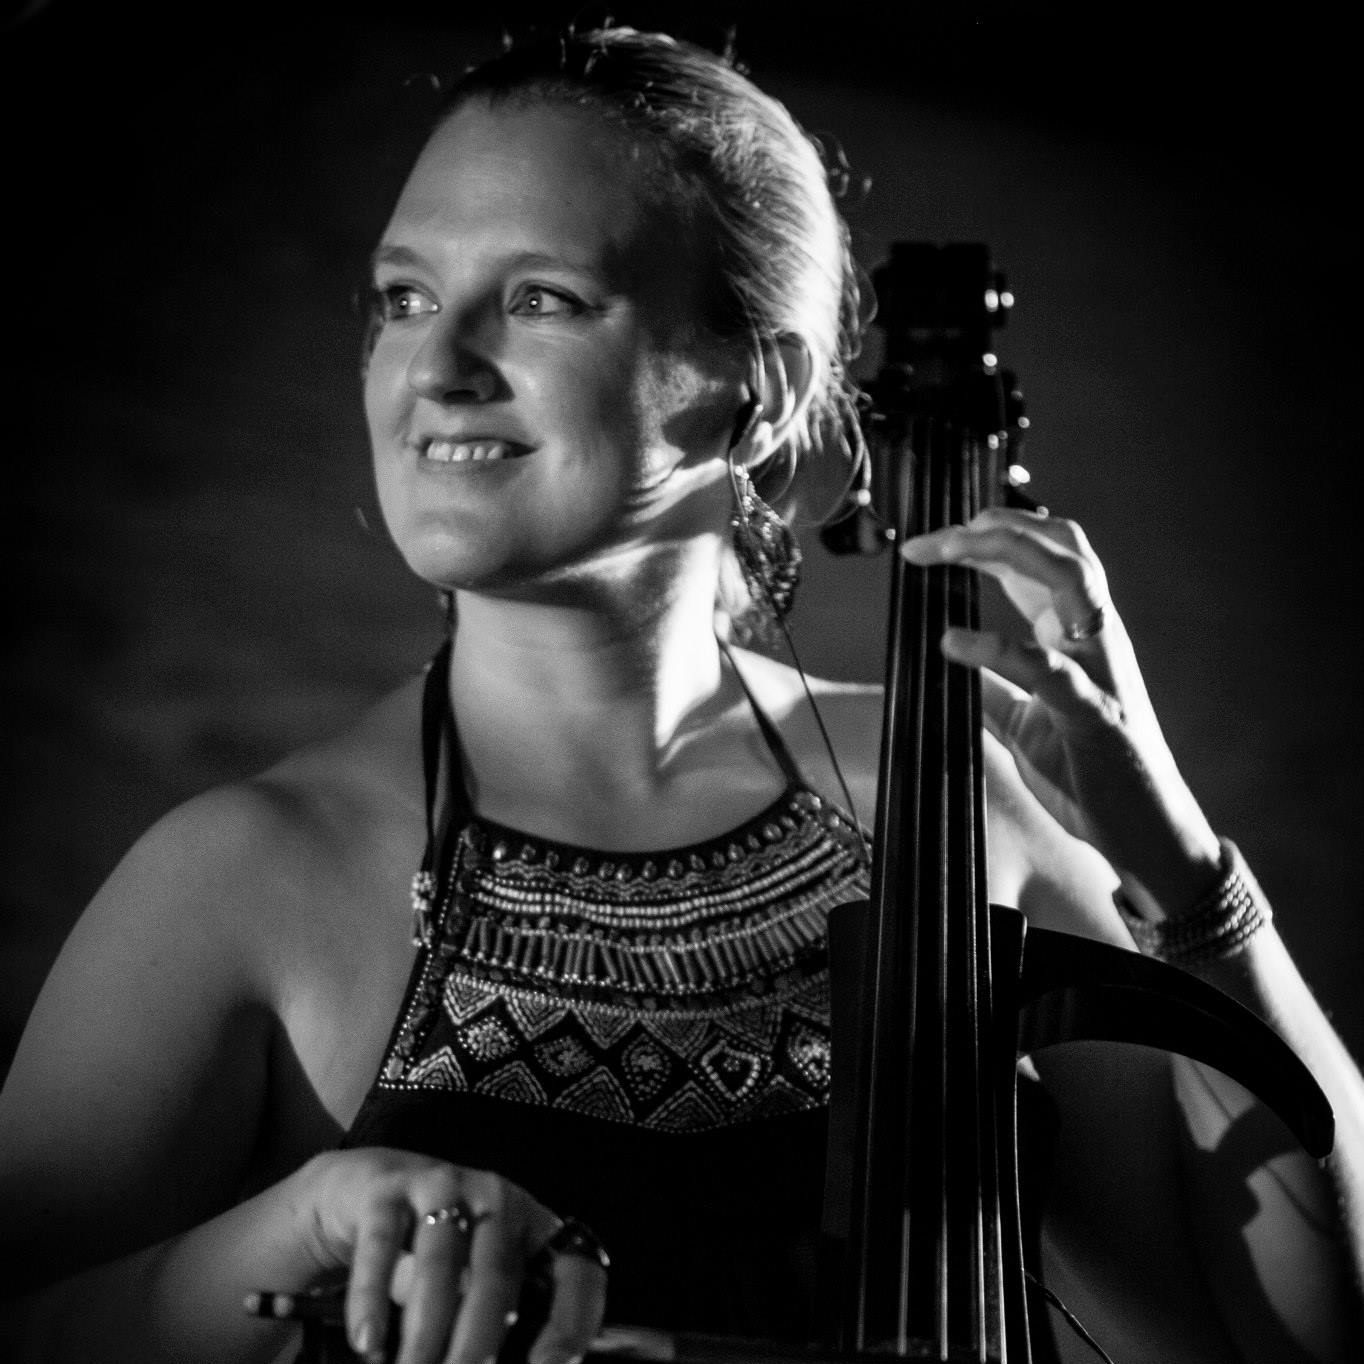 Polly Bowler - Cello